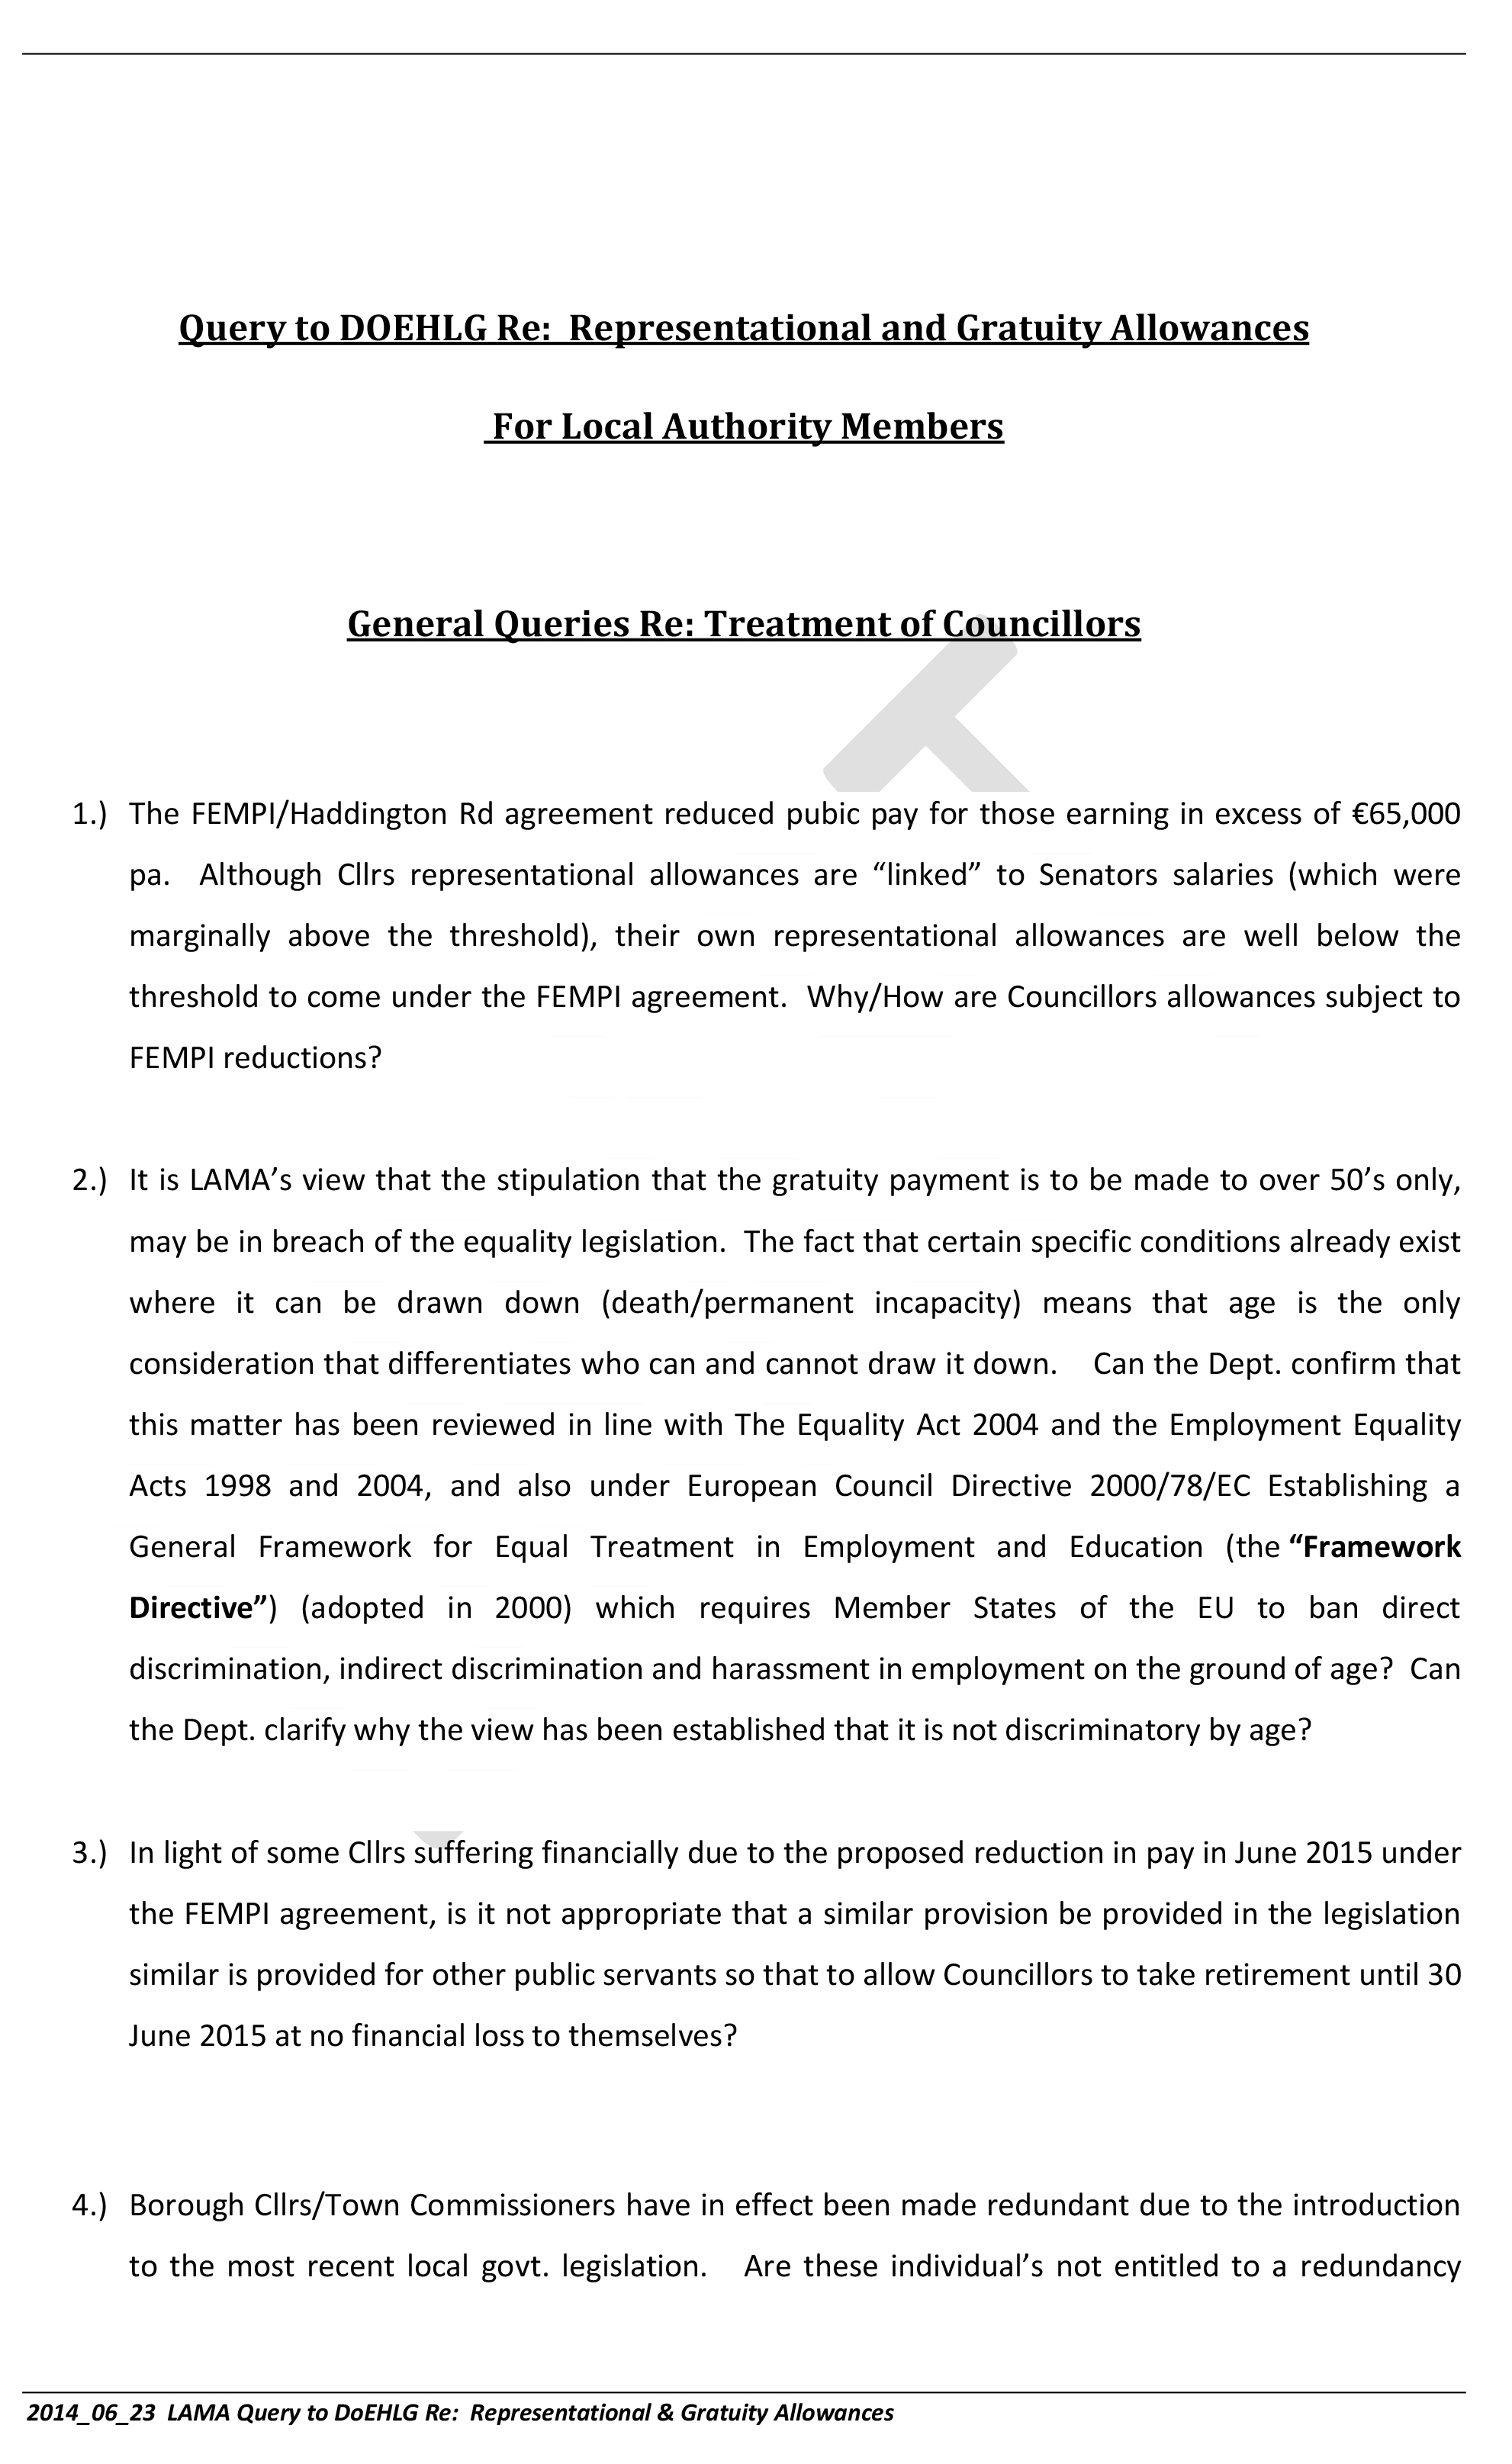 2014_06_24  Query to DOEHLG Re  Representational and Gratuity Allowances-1